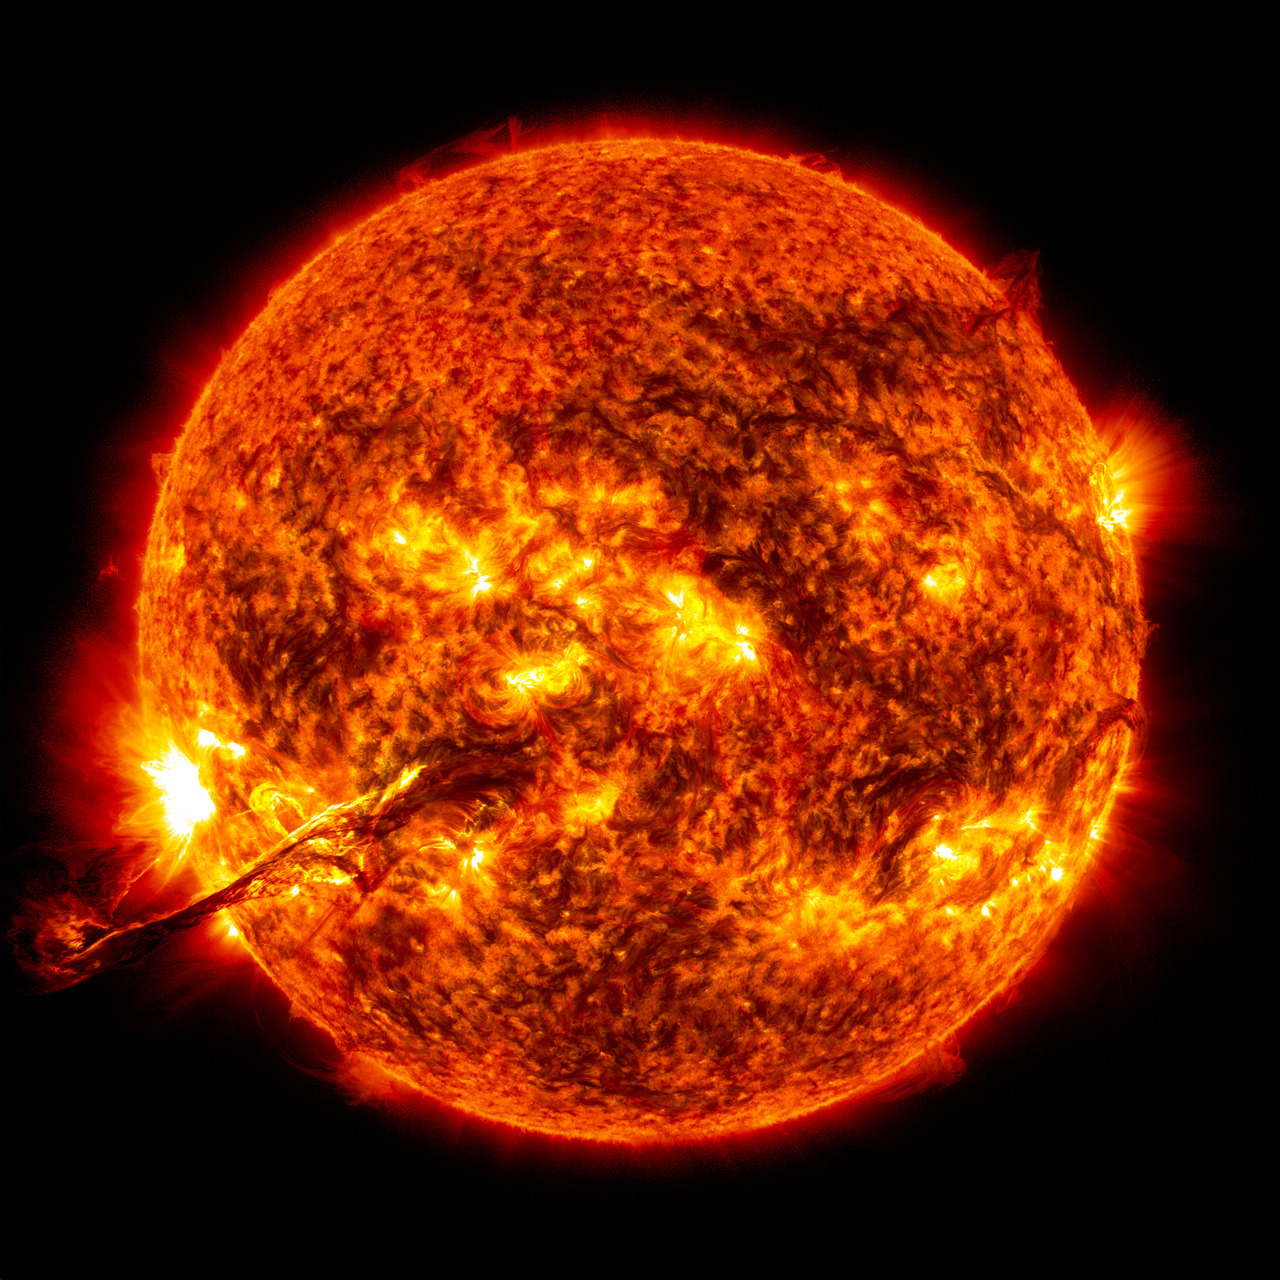 Wow! Spectacular Sun Photos Catch Colossal Solar Storm in Action CREDIT: NASA/SDO/GSFC This view of the giant solar prominence from the sun on Aug. 31, 2012, is created from two views by NASA's Solar Dynamics Observatory spacecraft using observations in both the 304 angstroms and 171 angstroms wavelengths.